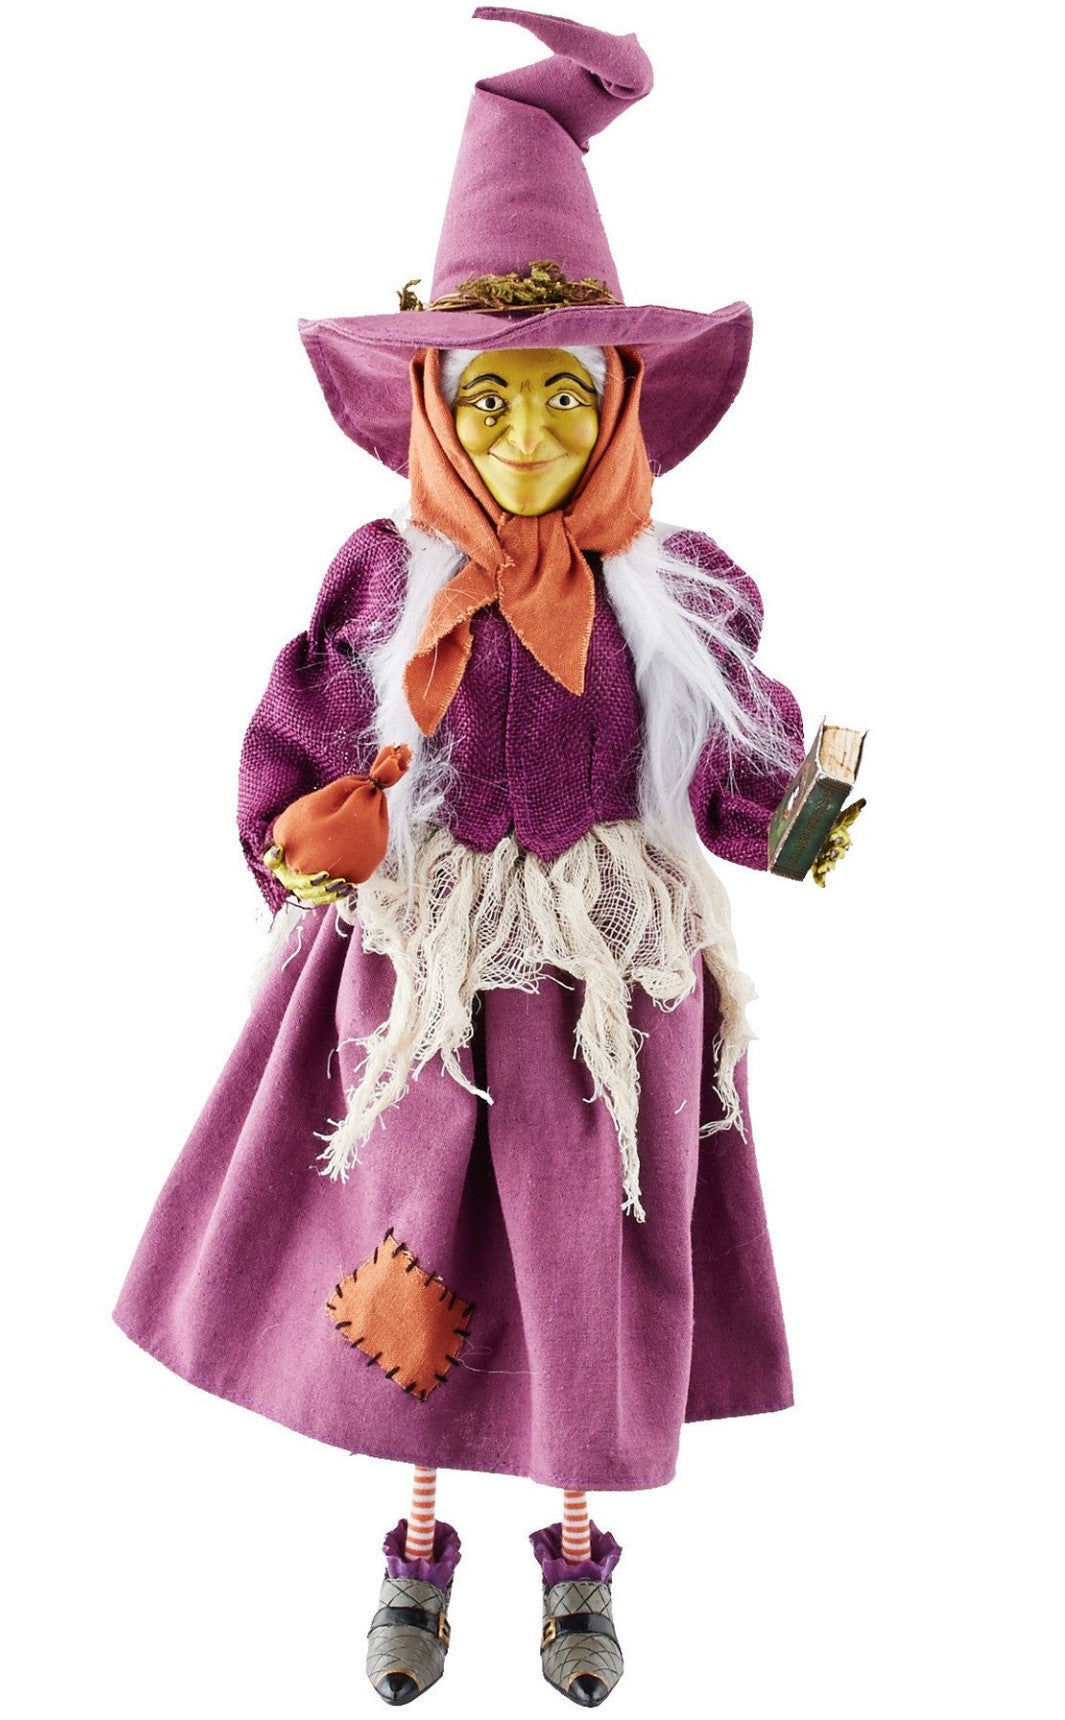 Lucy the Cat Witch Figurine in purple dress